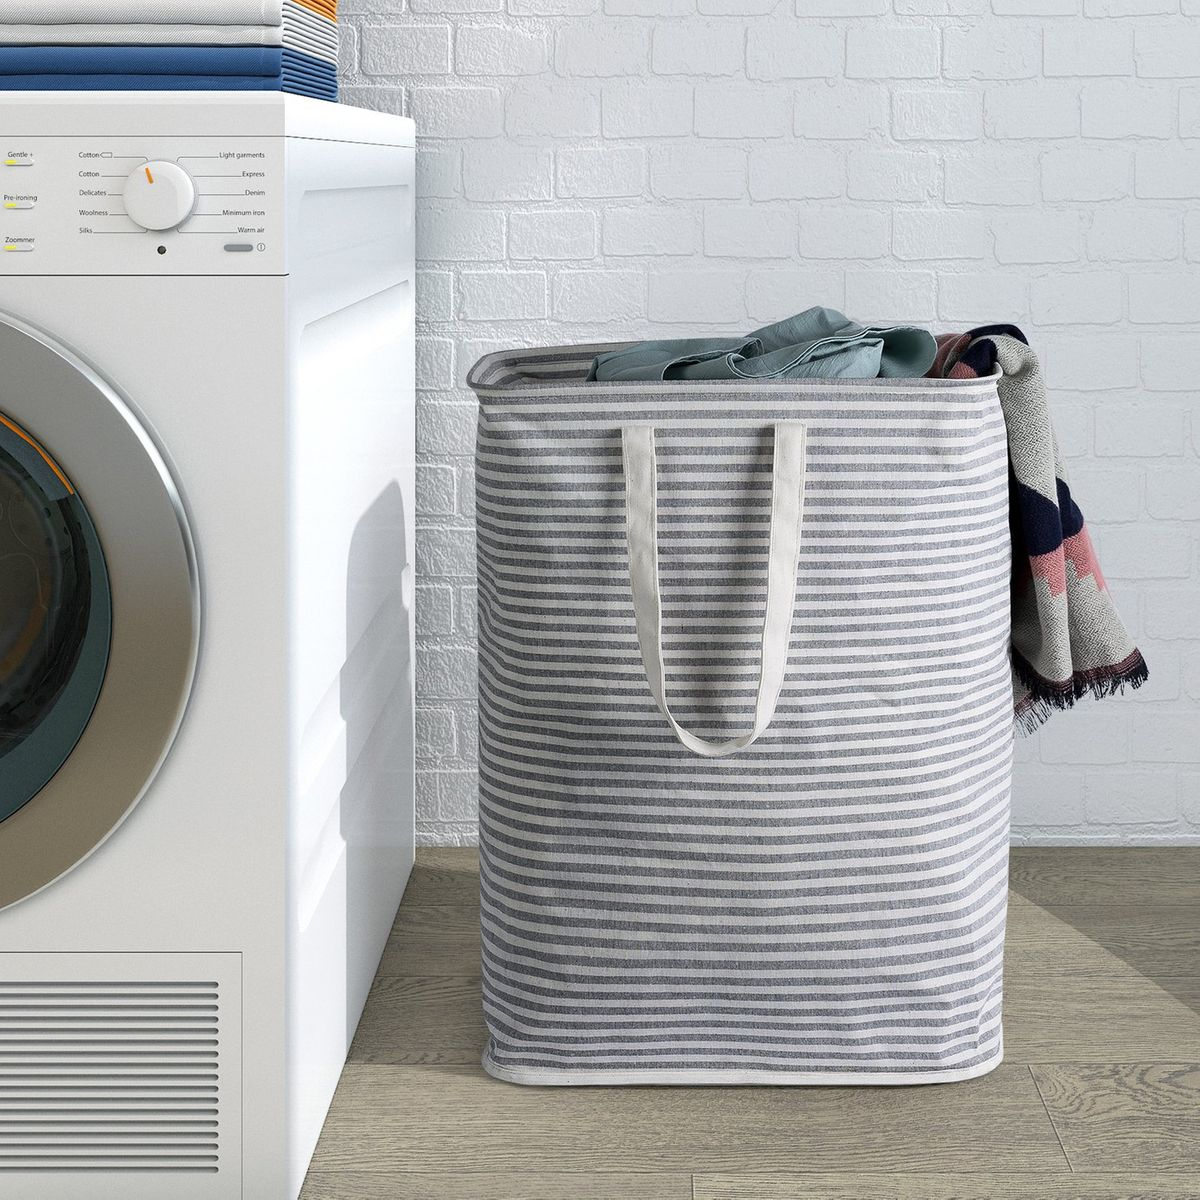 20 Best Laundry Baskets And Hampers 2020 The Strategist New York Magazine